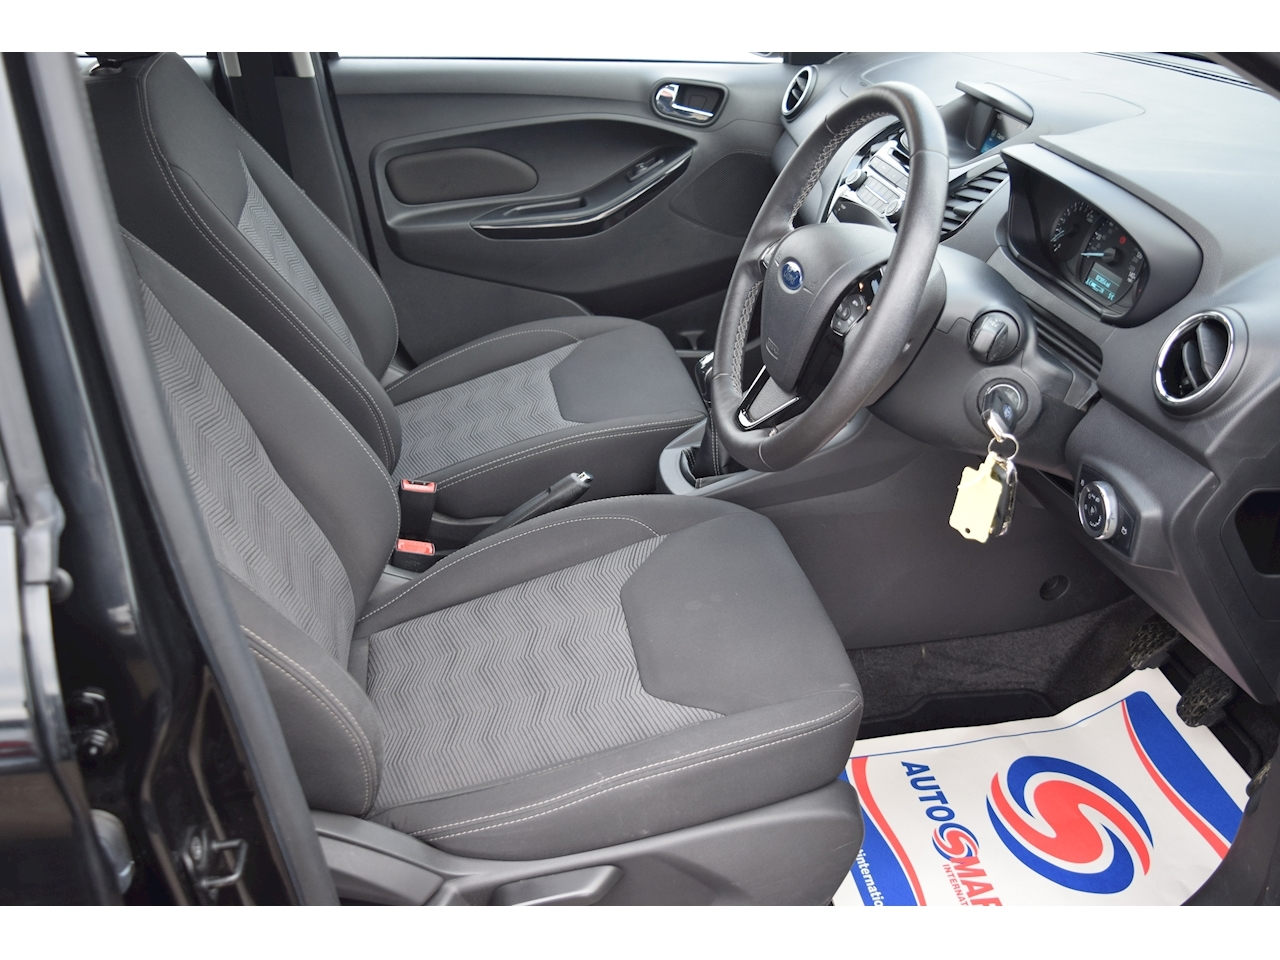 Ford Ka+ Zetec Hatchback 1.2 Manual Petrol